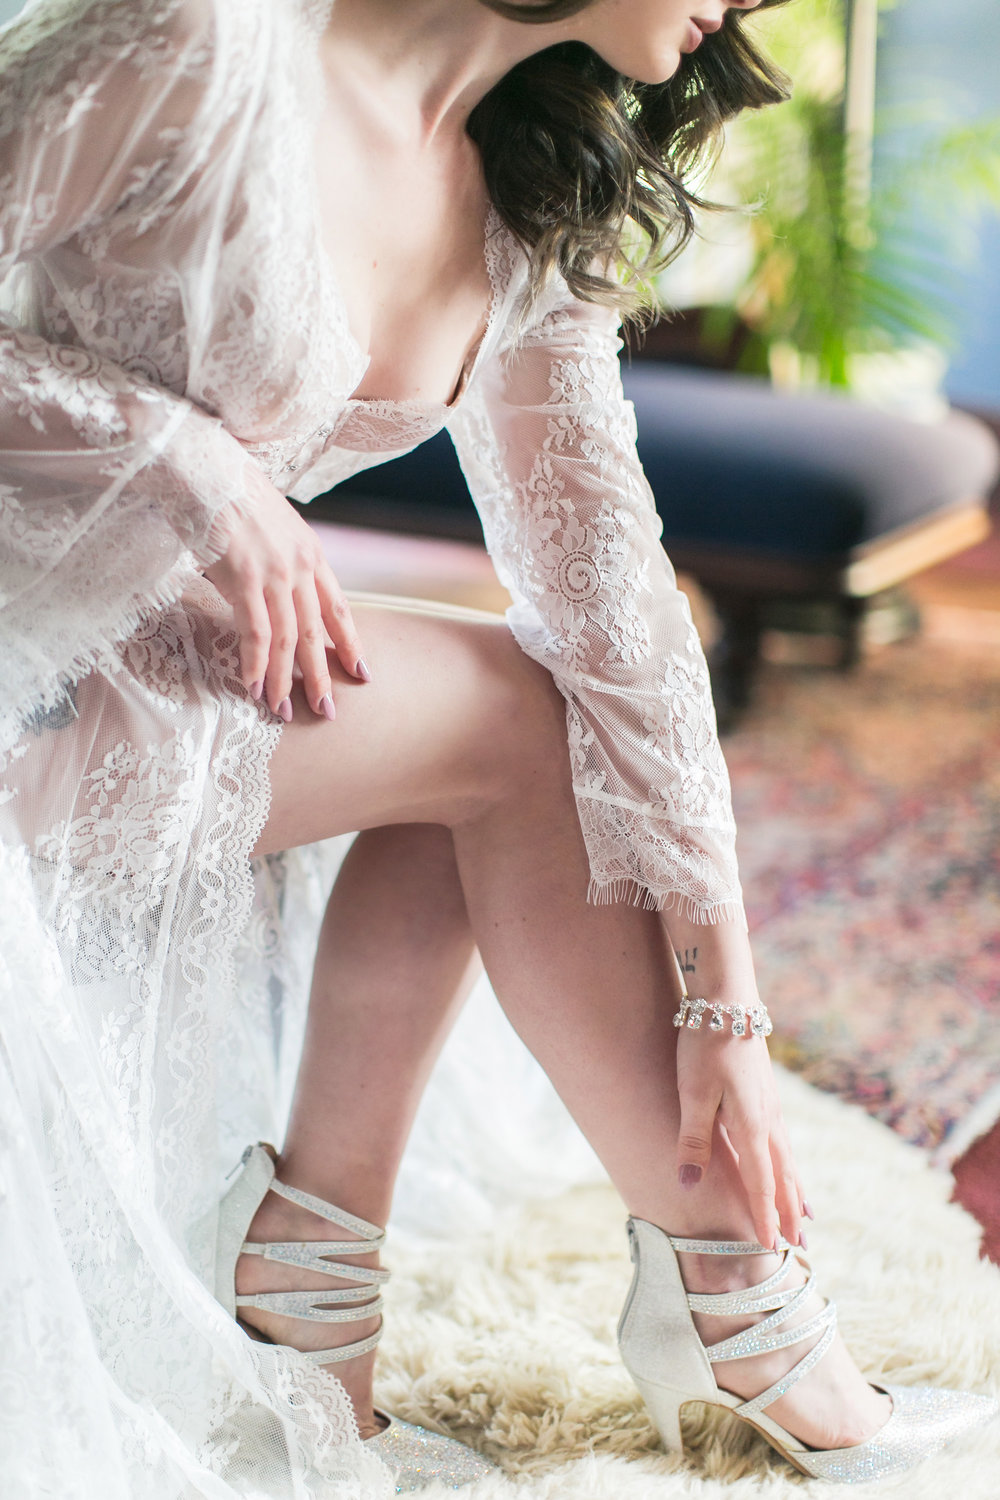 bridal-boudoir-wedding-photographer-carrie-vines.jpg